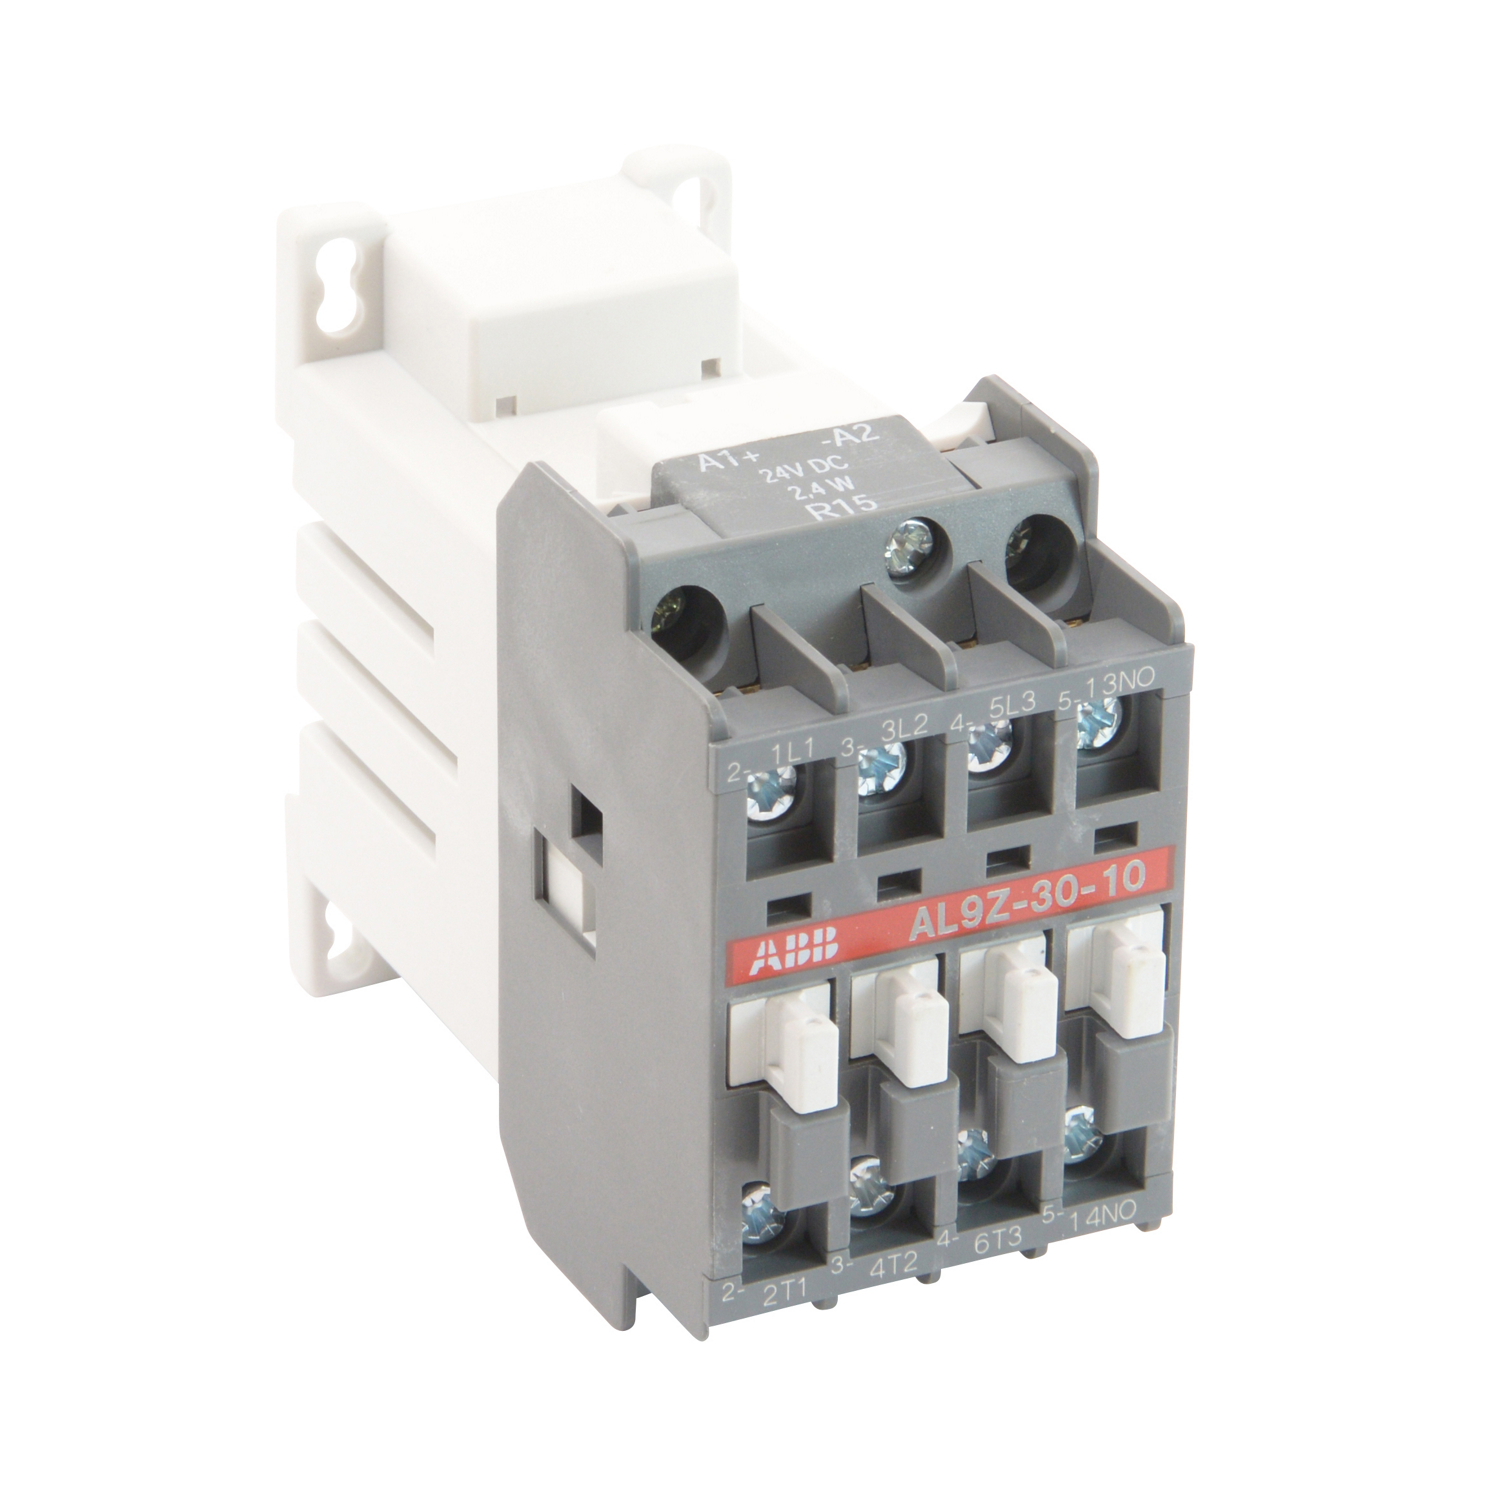 abb a26 30 10 contactor wiring diagram wiring library3 pole, 21 amp, non reversing across the line contactor with 24v dc